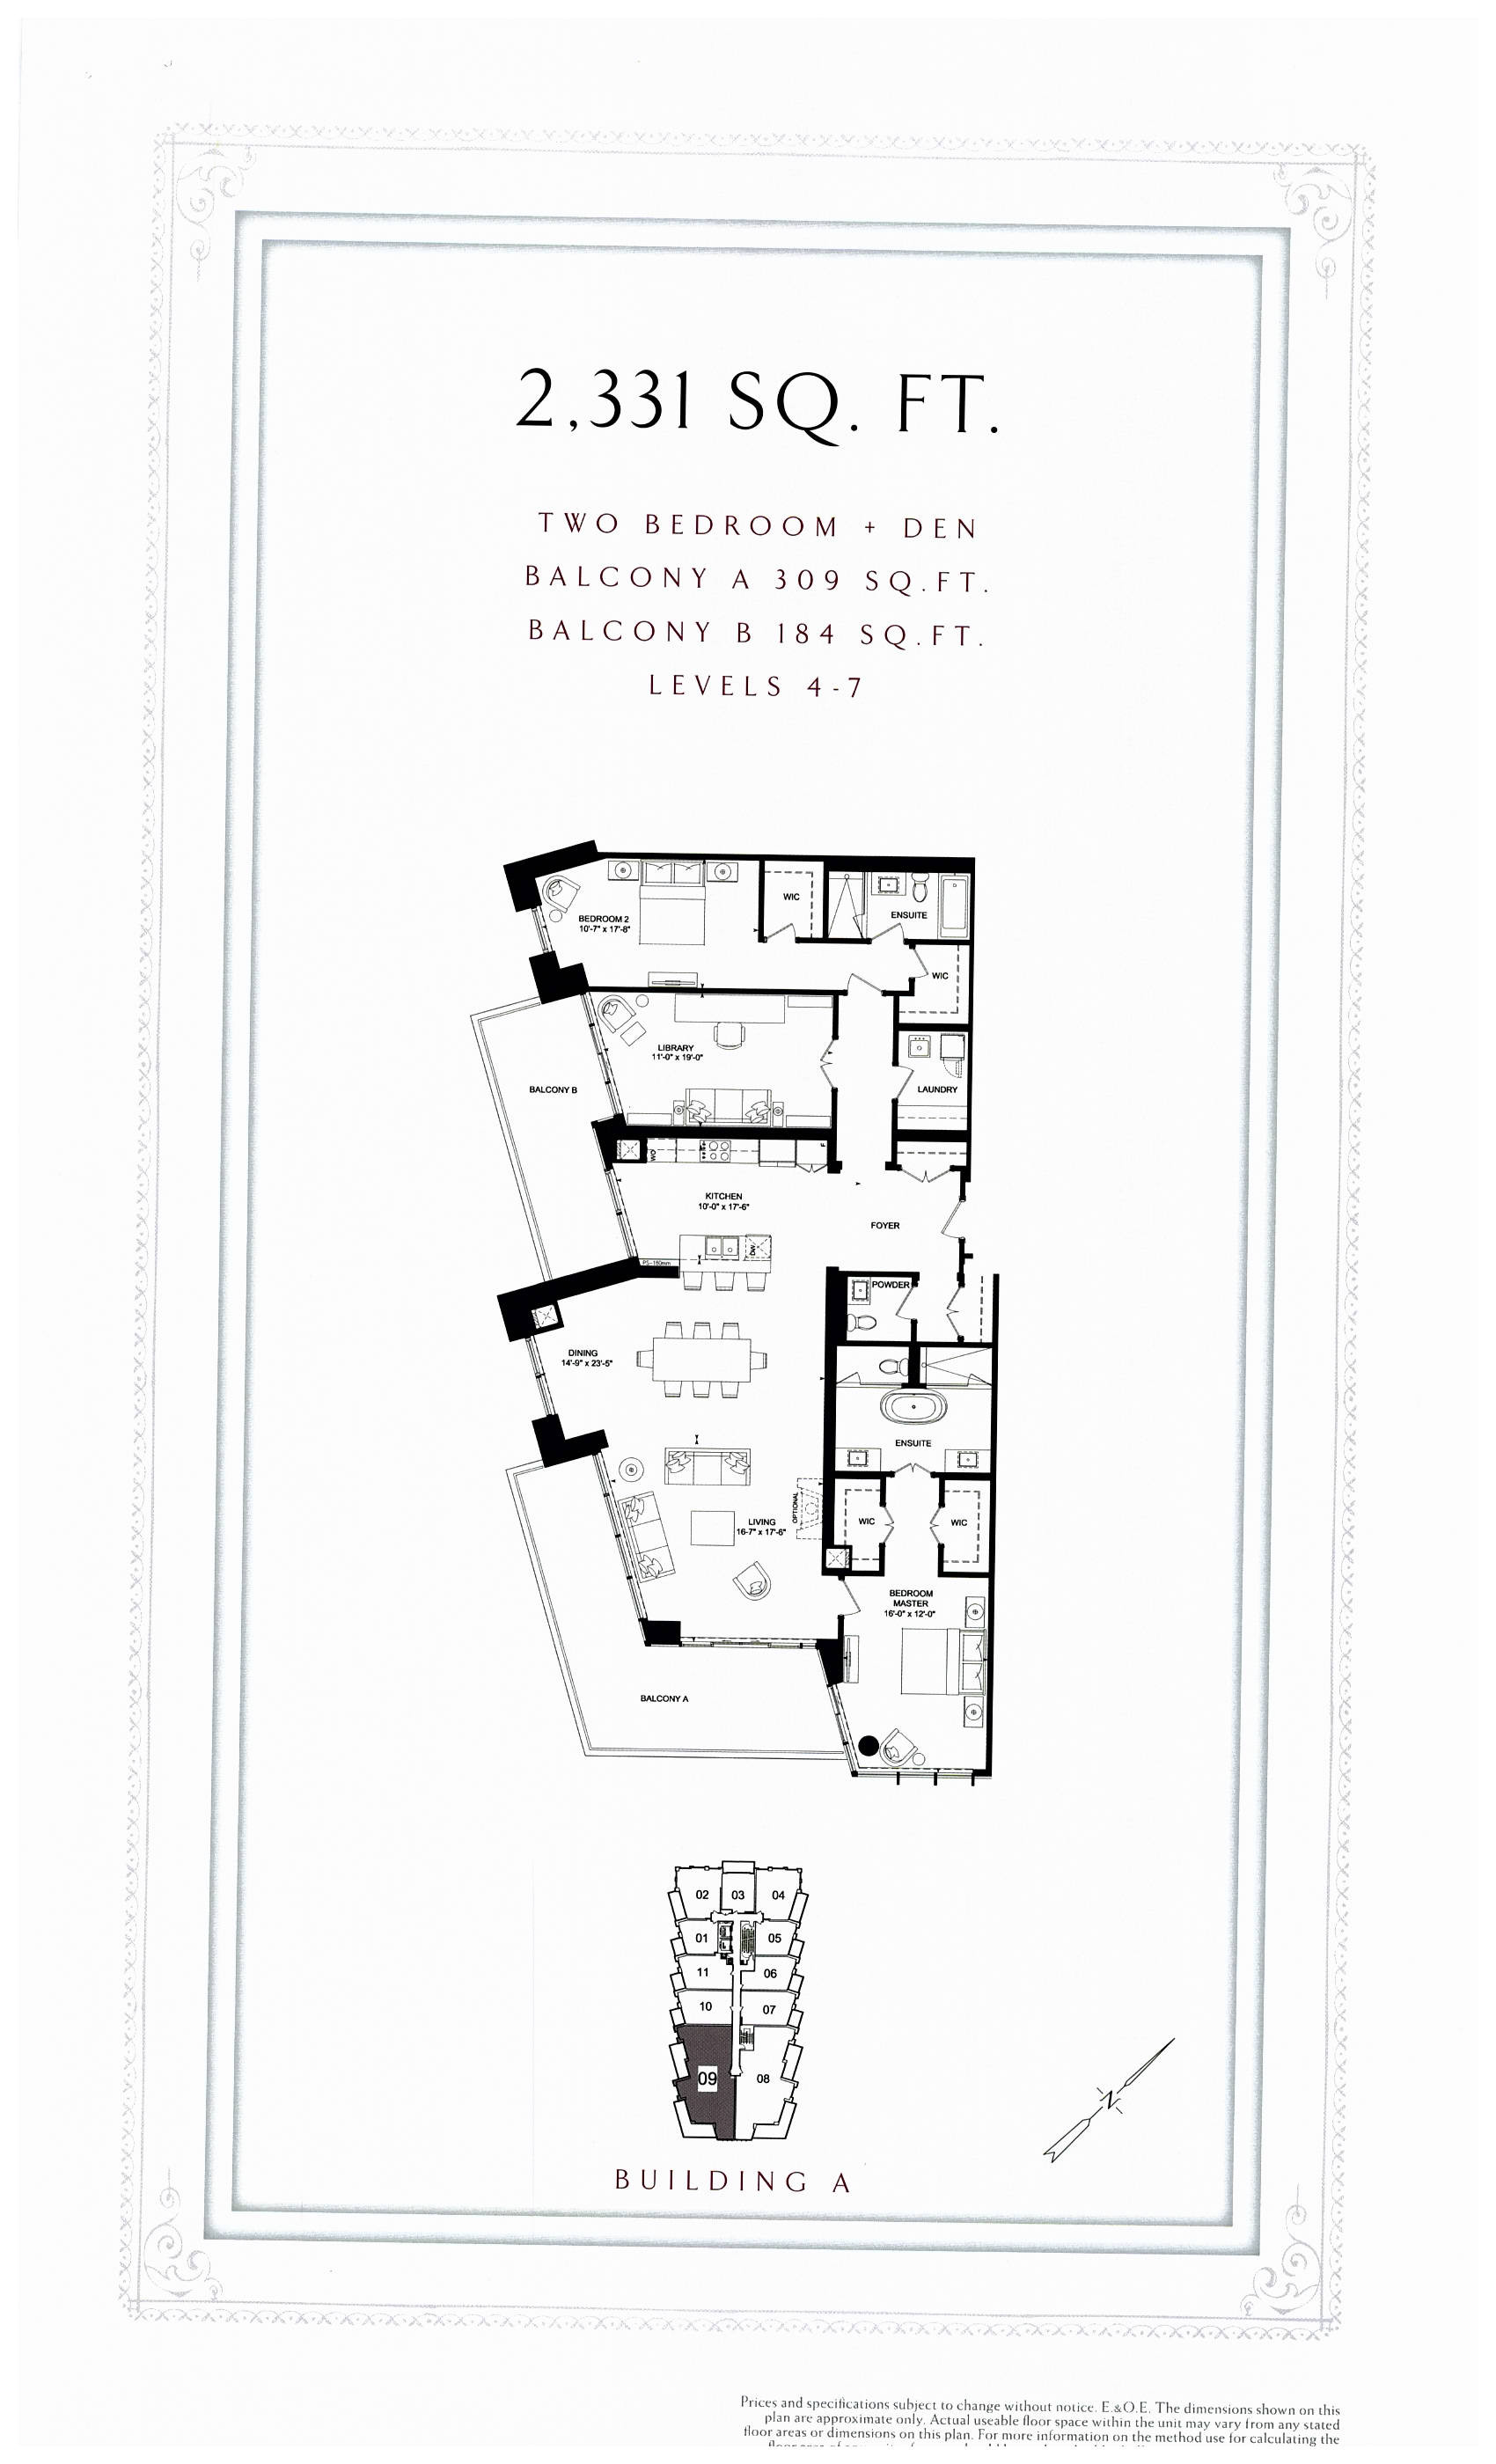 2,331 sq. ft. Floor Plan at Bridgewater Residences on the Lake Condos - 2331 sq.ft